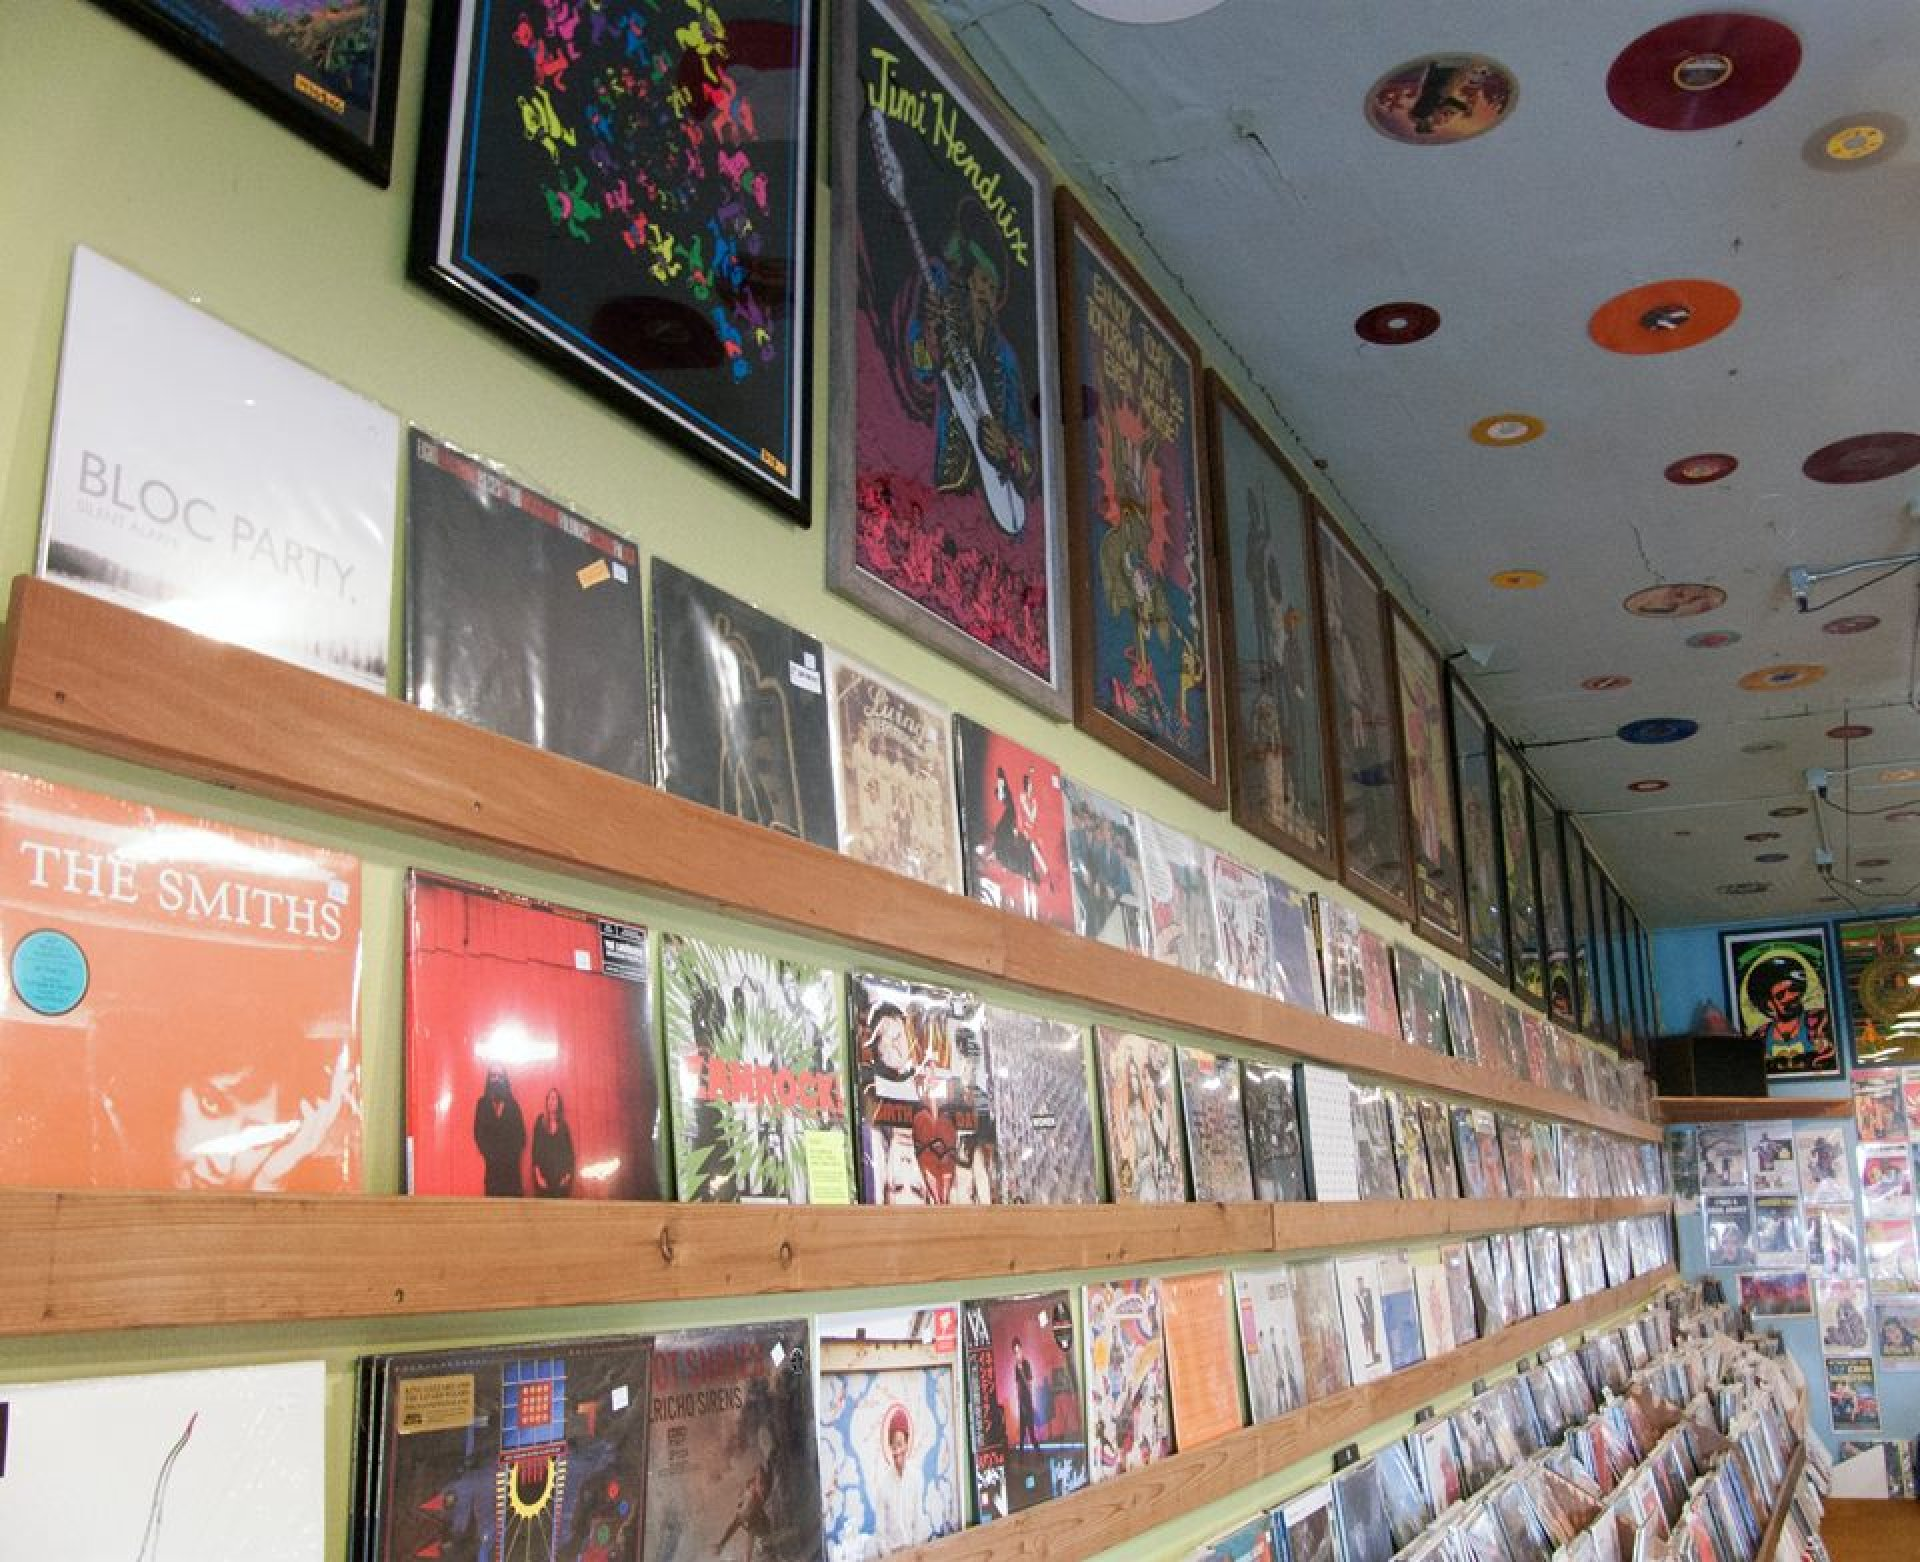 Wall of records at People's Records. People's Records is an independent record store in Arcata, California. They are celebrating Record Store Day on Saturday, April 21, 2018. Photo by Matthew Hable.